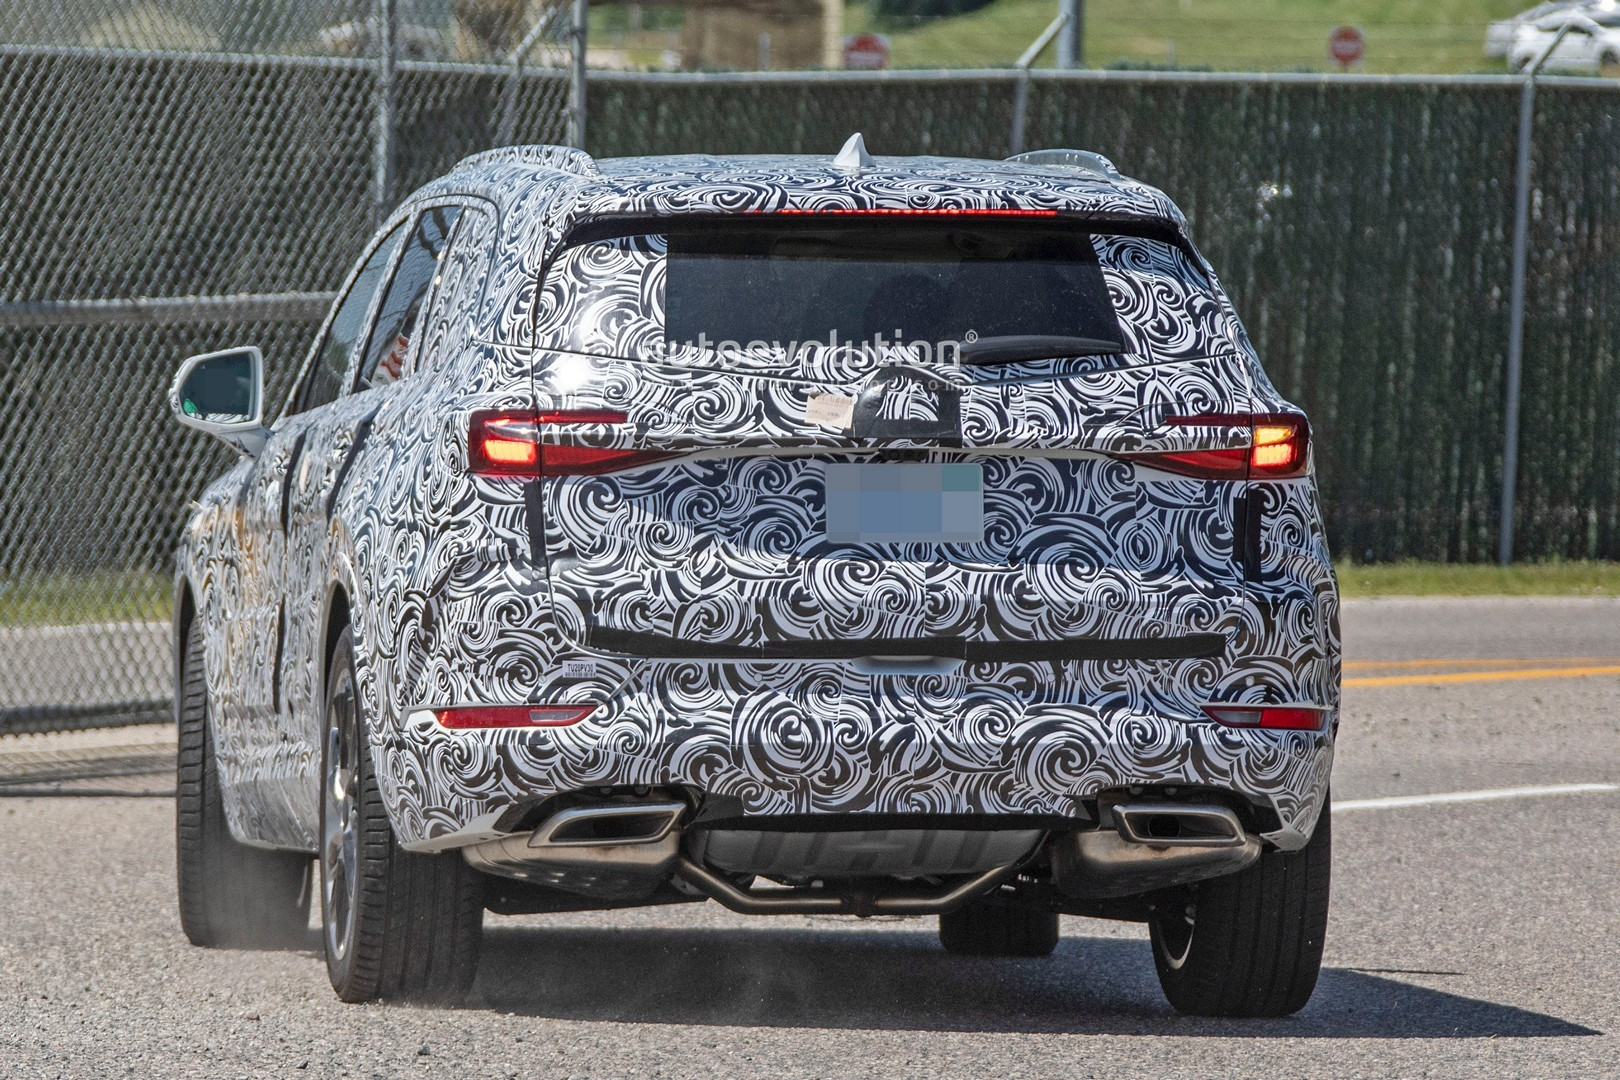 2020 - [Buick] Enspire Buick-spotted-testing-baby-enclave-spied-looks-like-enspire_5